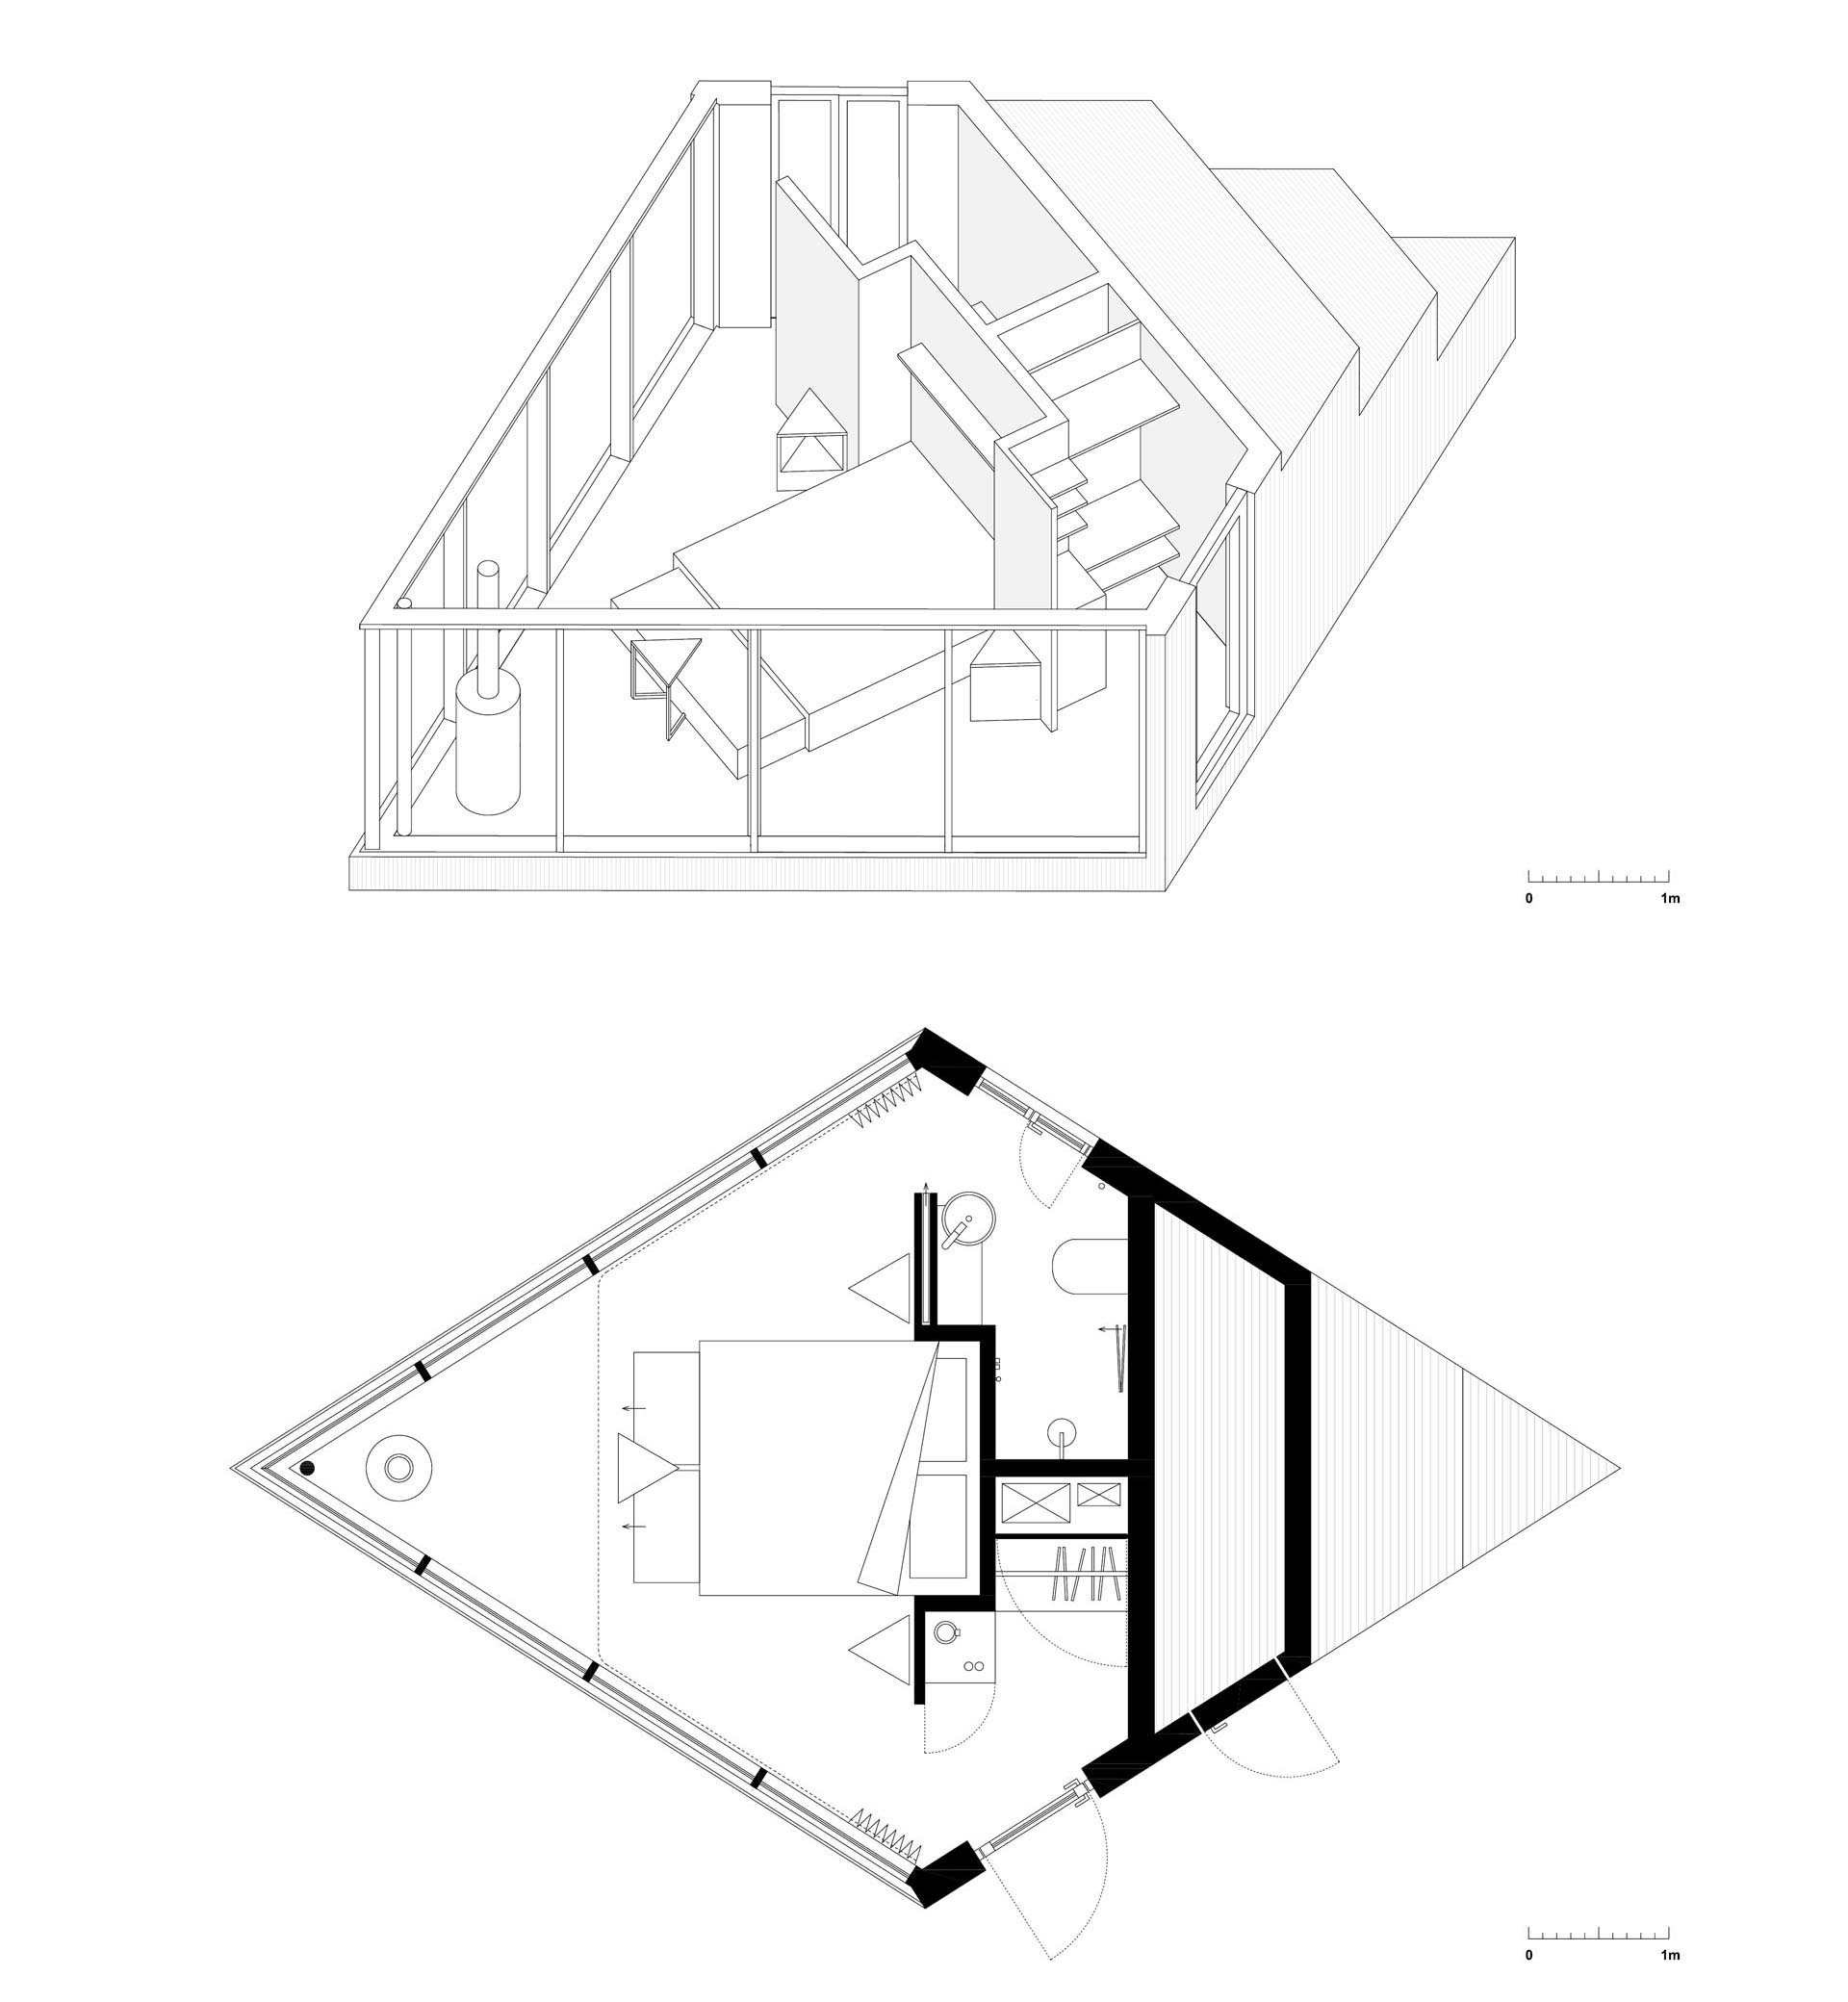 The floor plan of a small diamond shaped cabin.